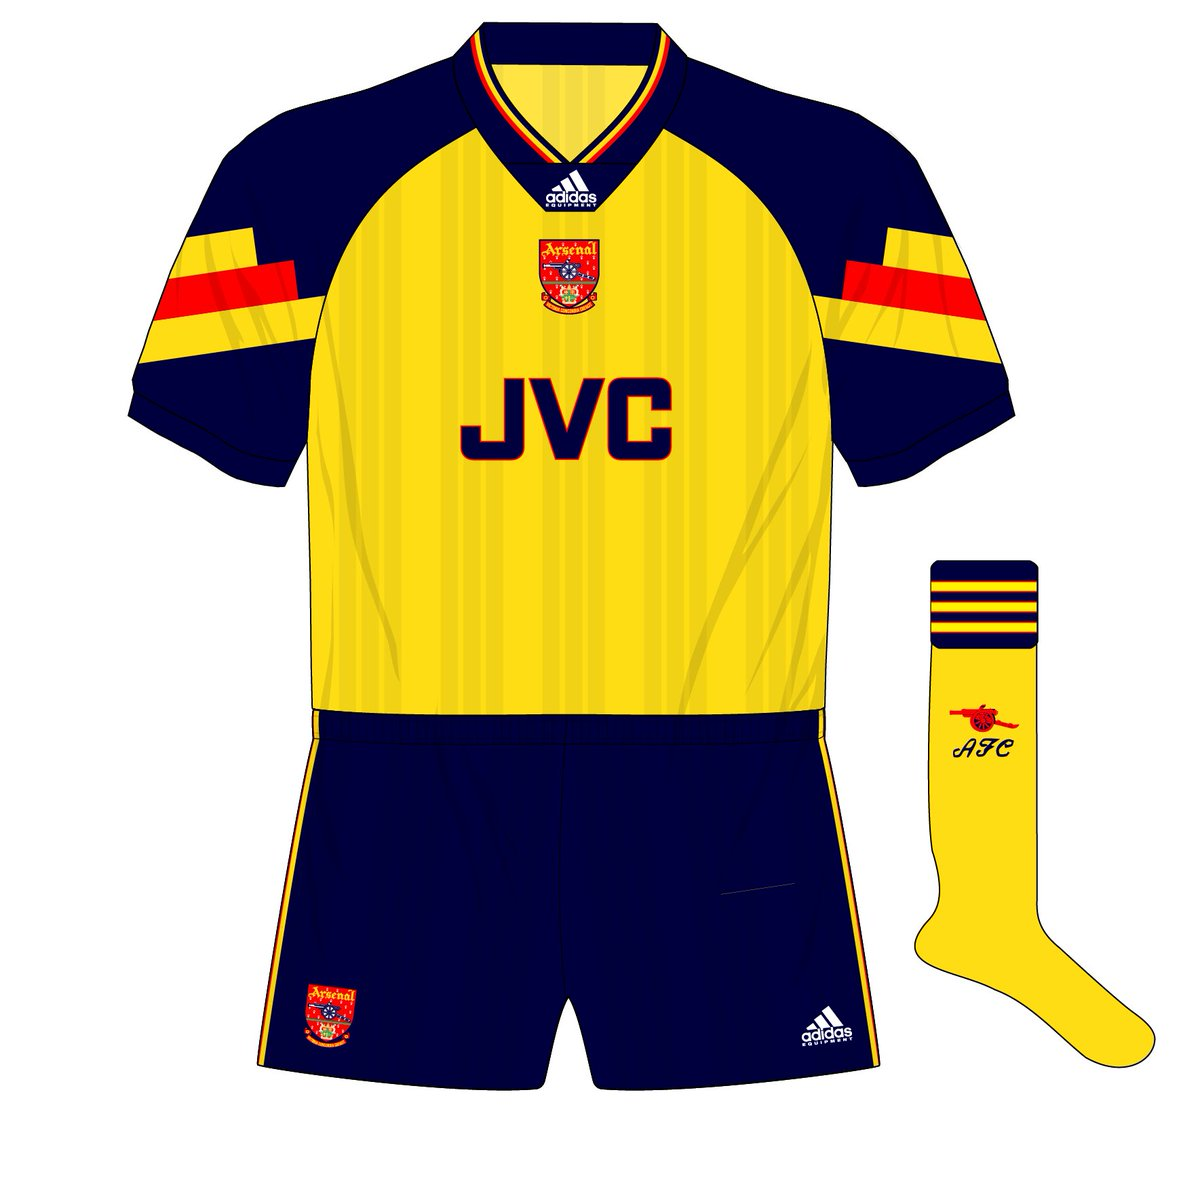 ab8f875d1ec Today s  fantasykitfriday was requested by  OwenAmos - an away version of  the the 1992-94 Arsenal home kitpic.twitter.com bceOufJNlh